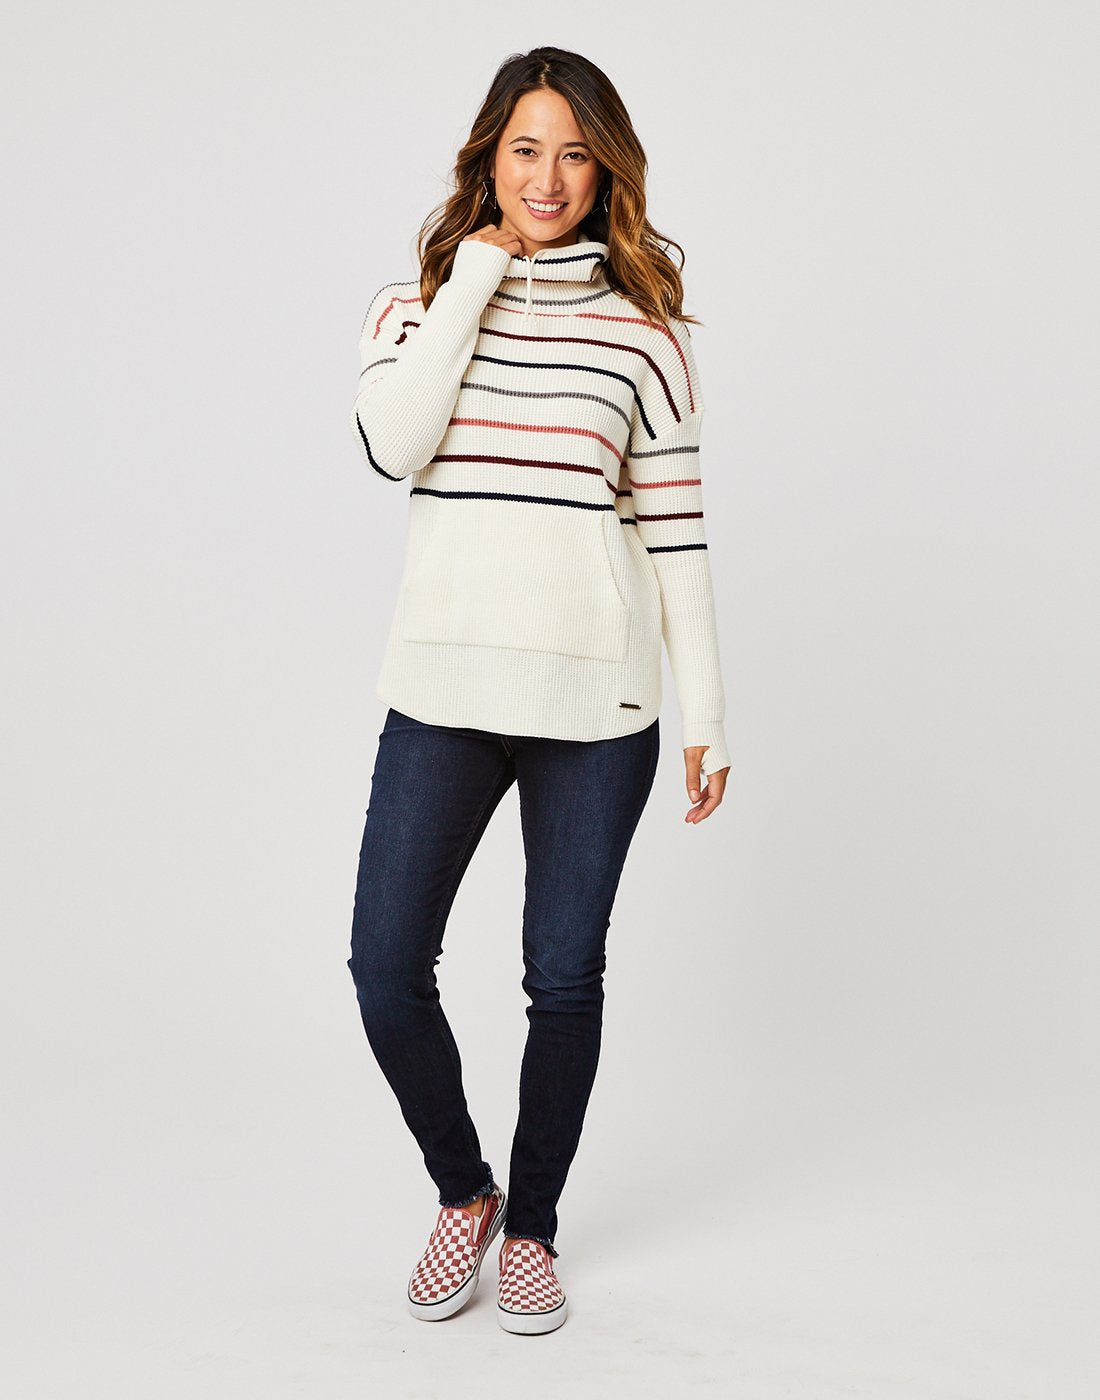 Carve Designs Rockvale Sweater